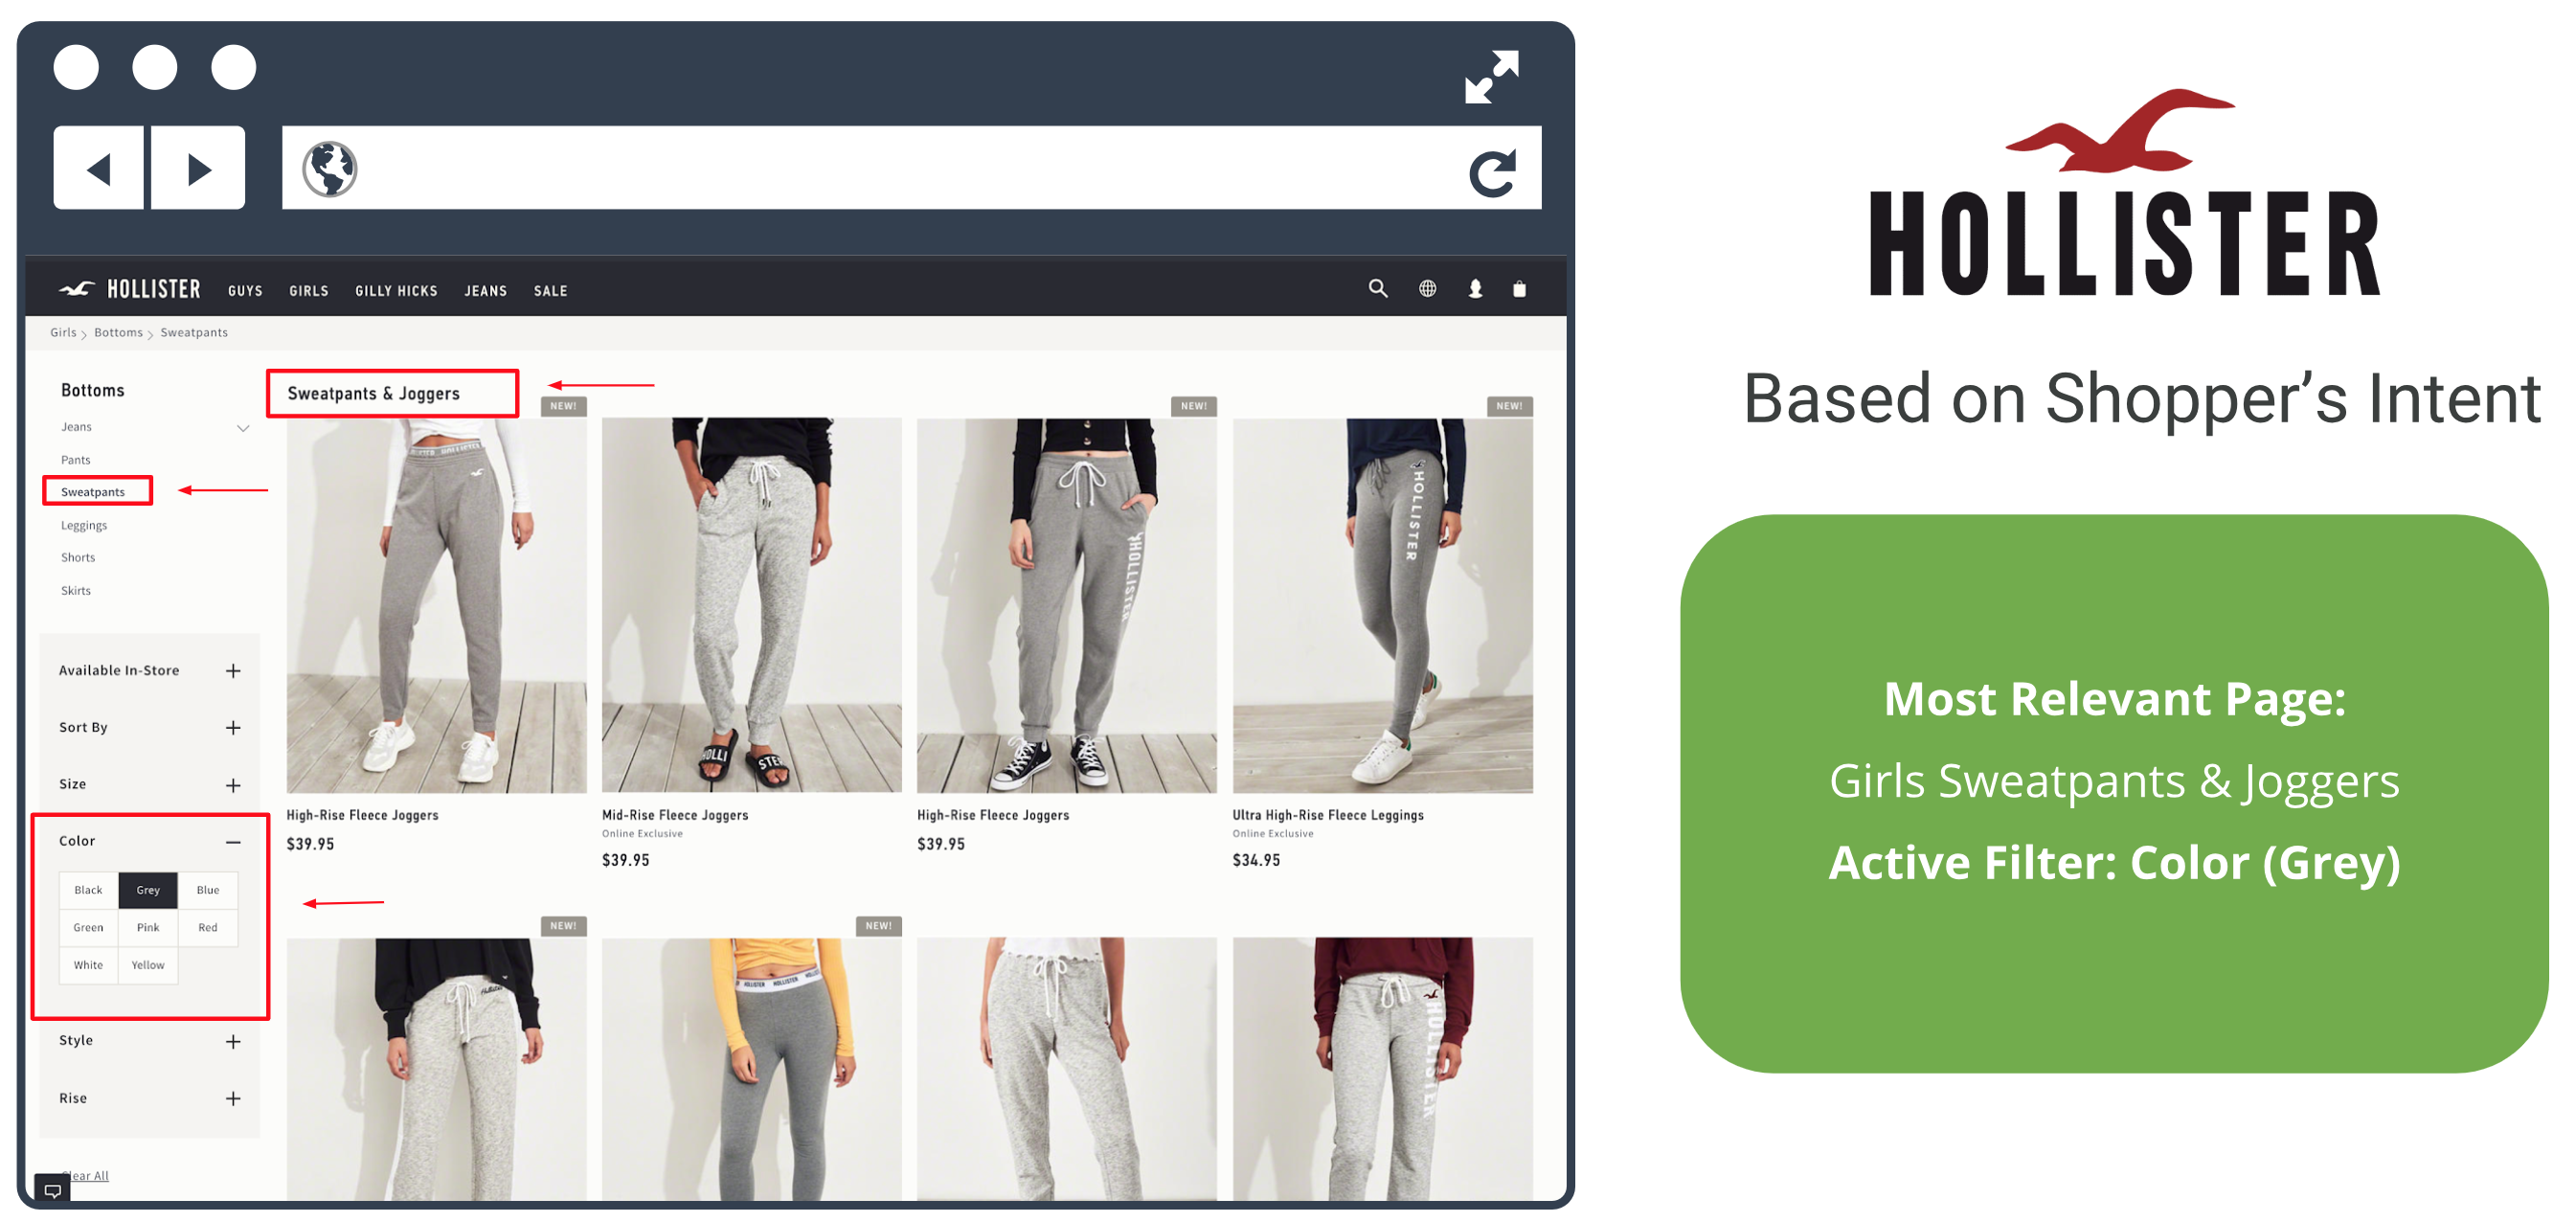 hollister solution based on shoppers intent